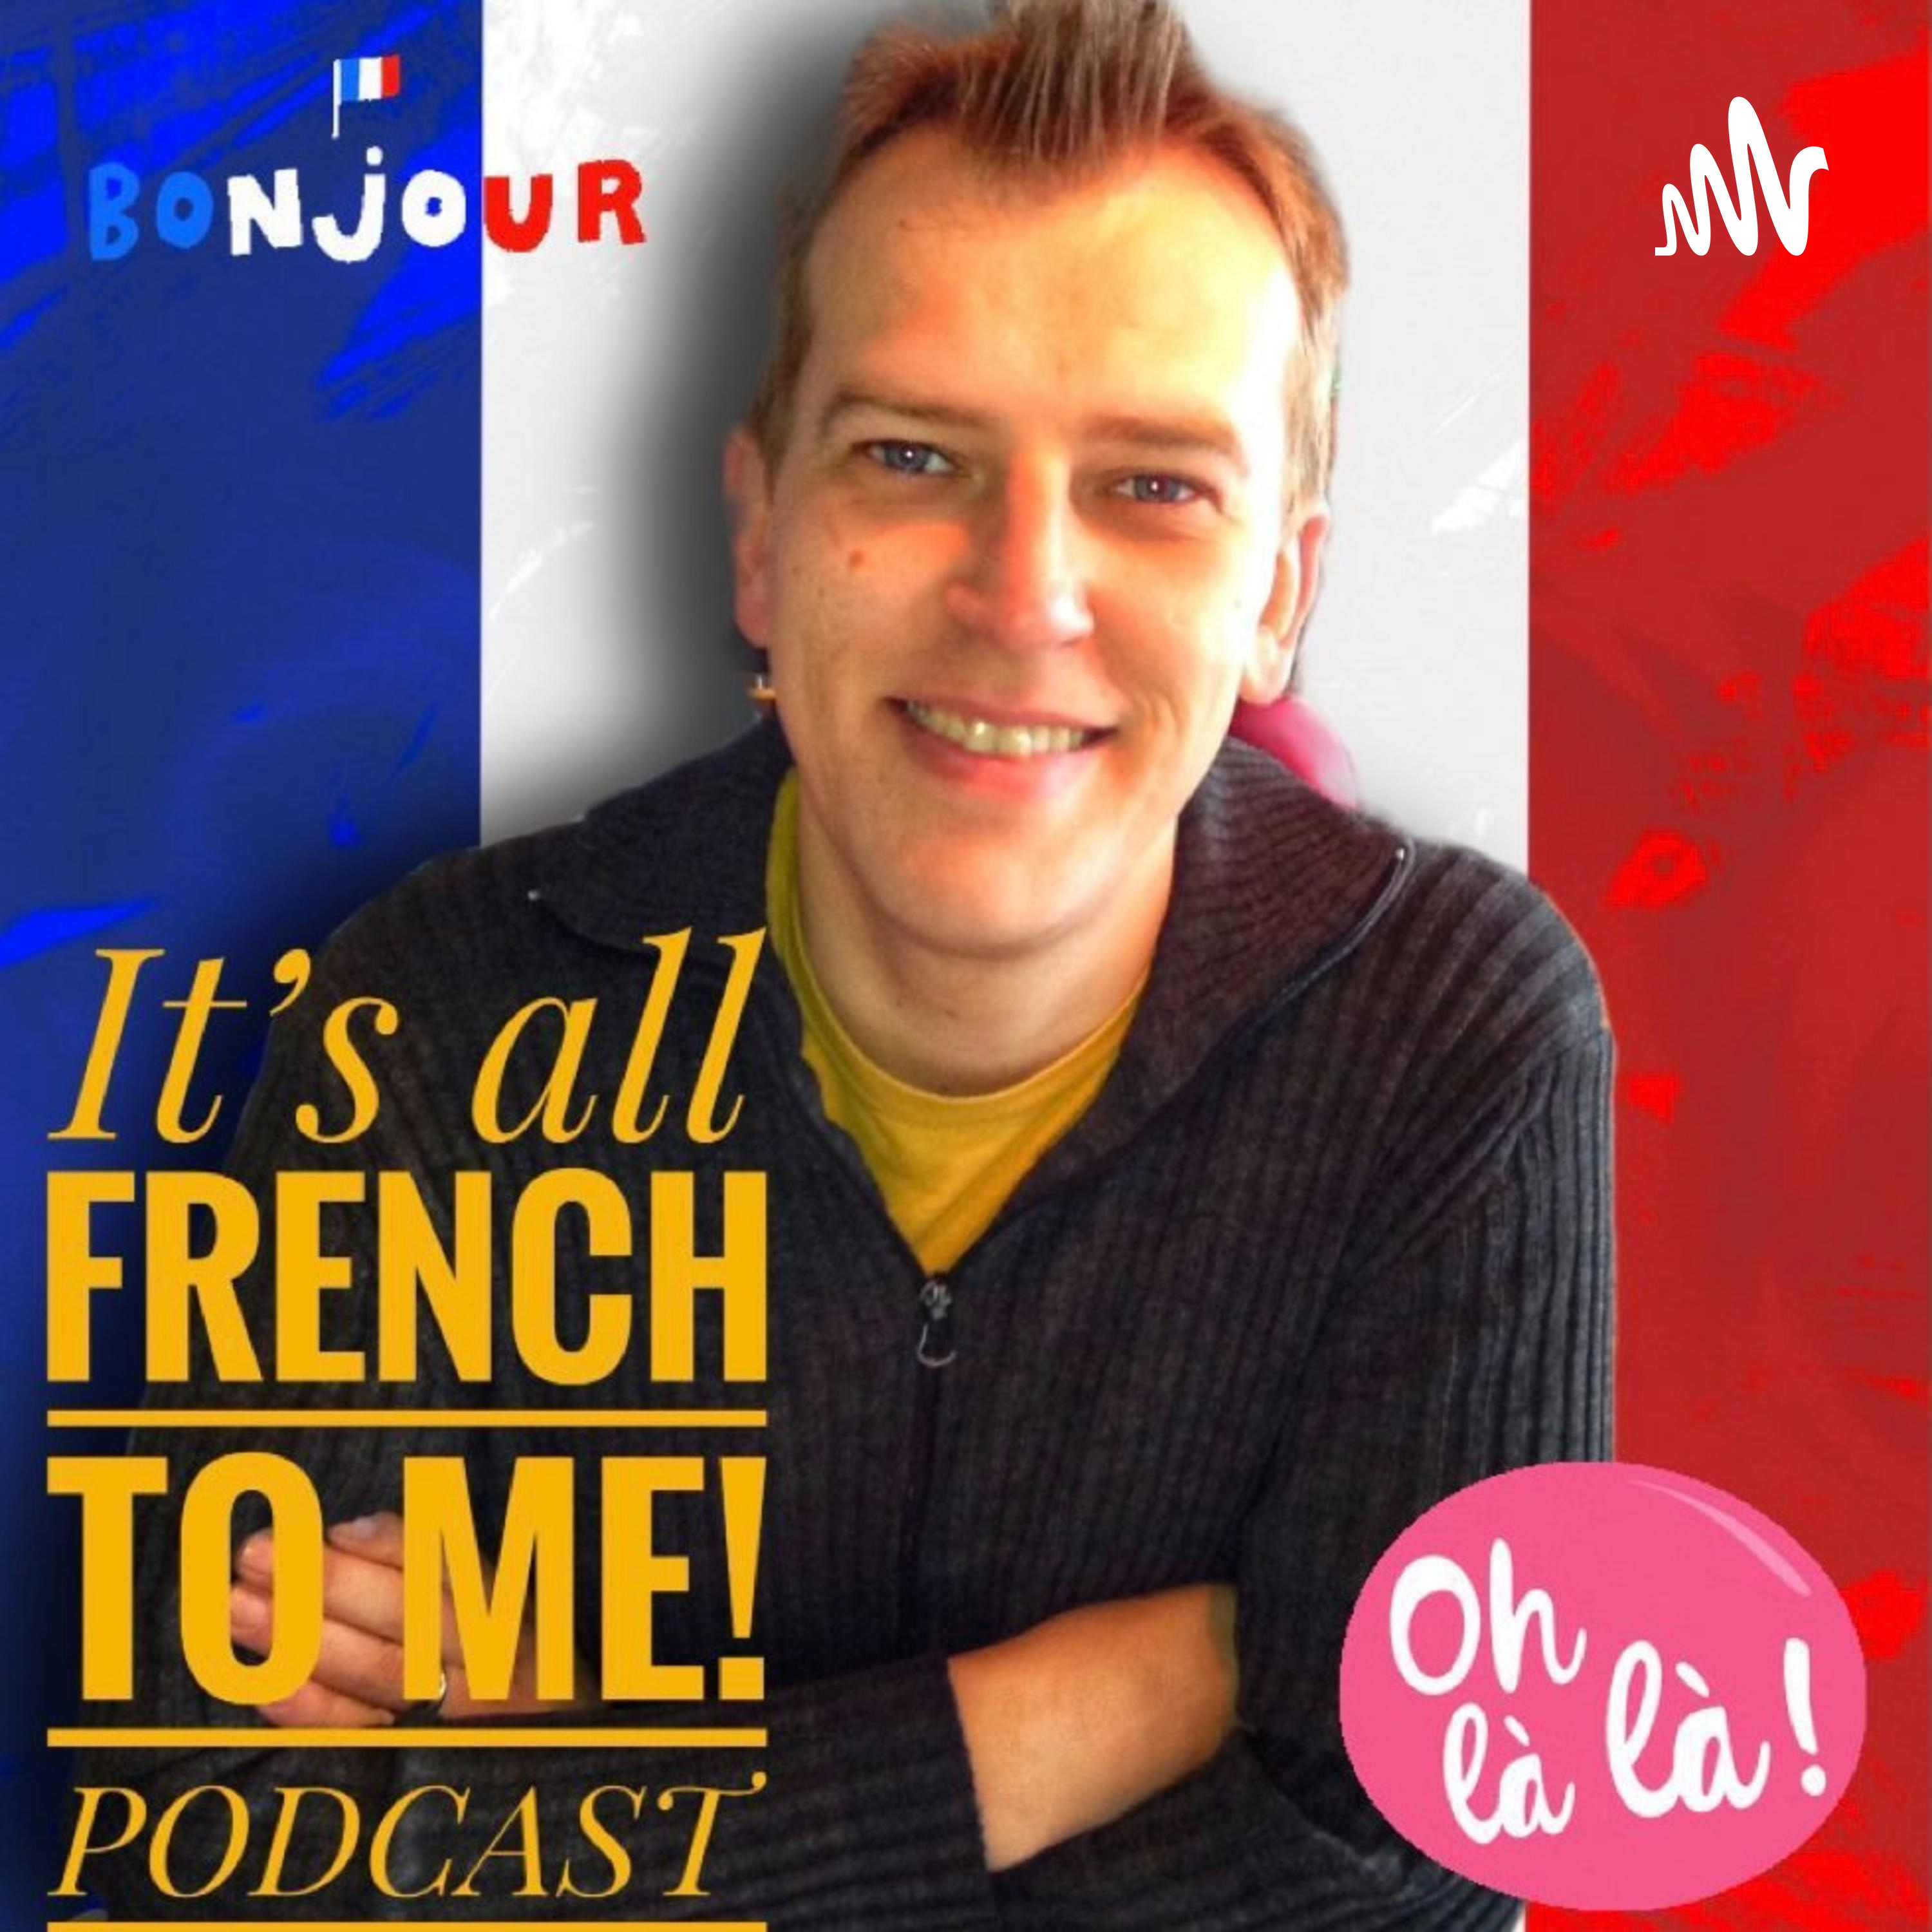 It's all French to me!